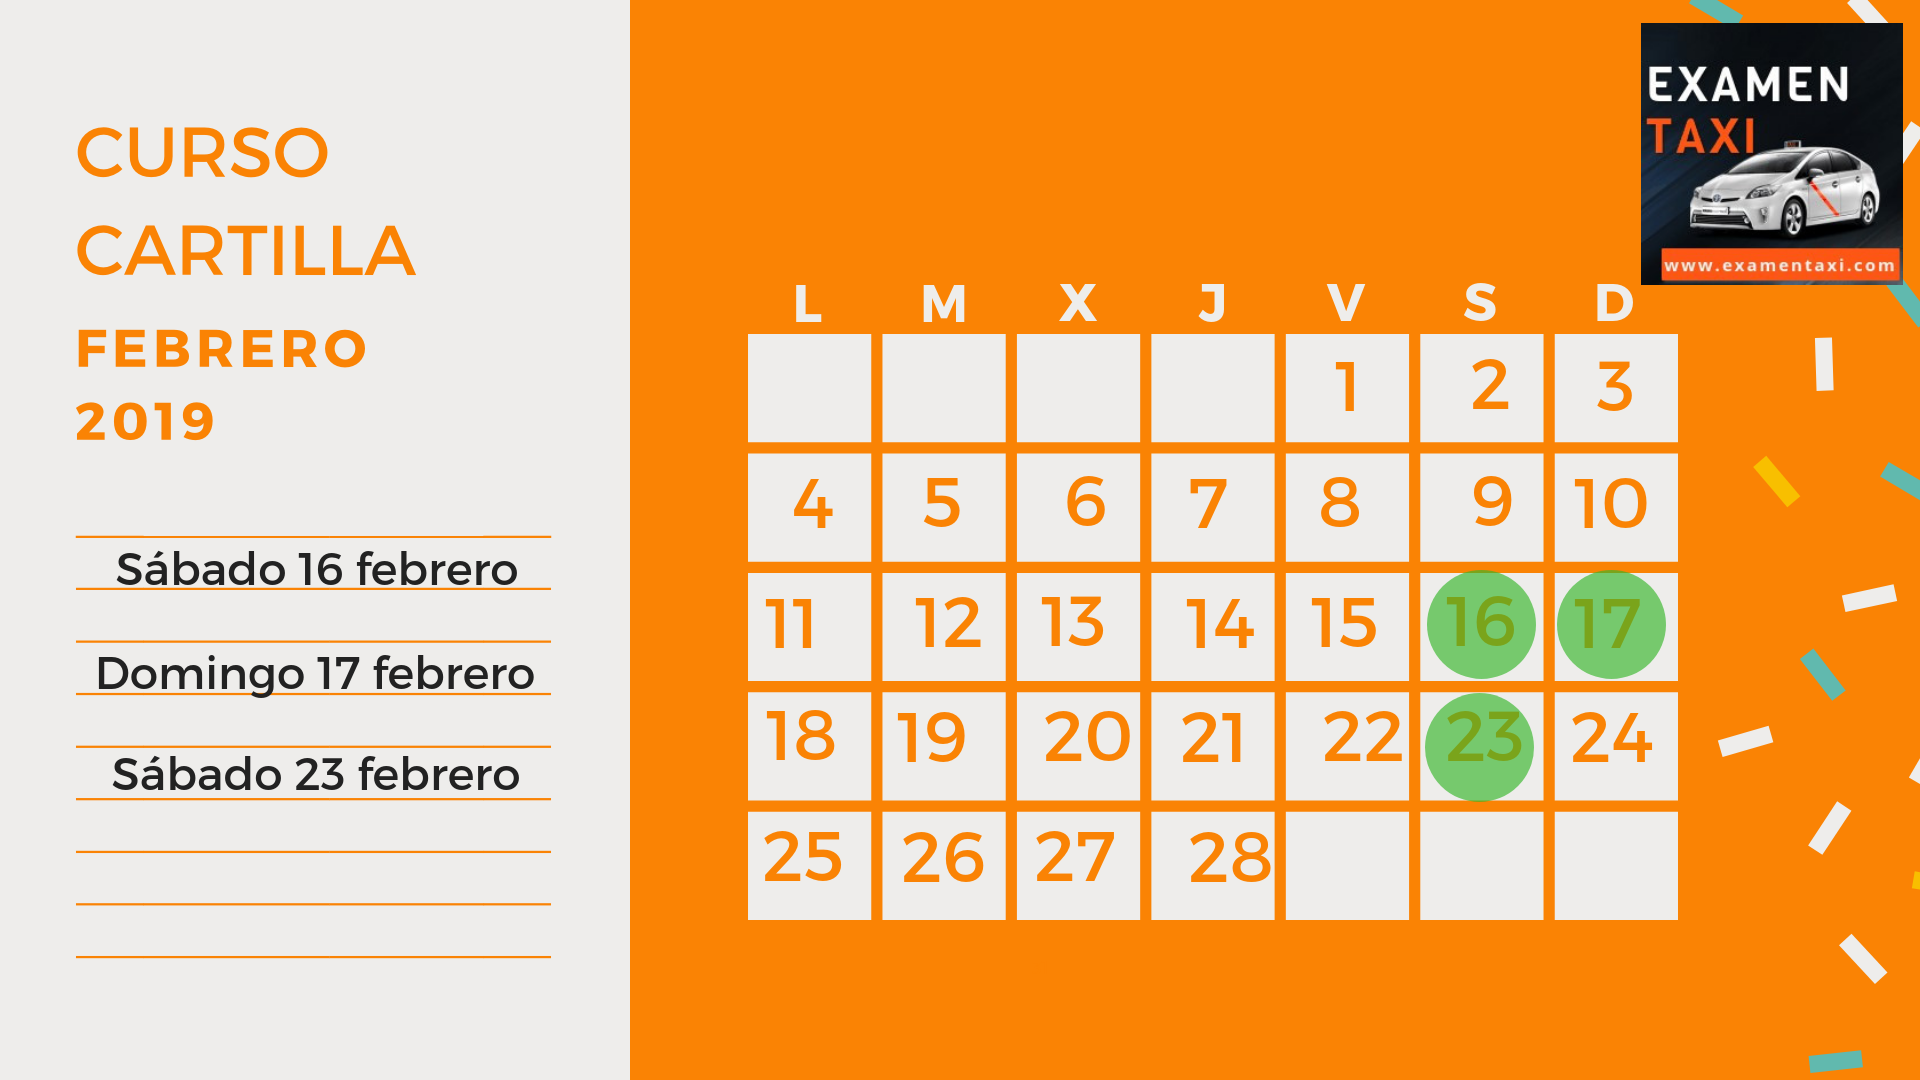 Calendario Curso Cartilla Febrero 2019